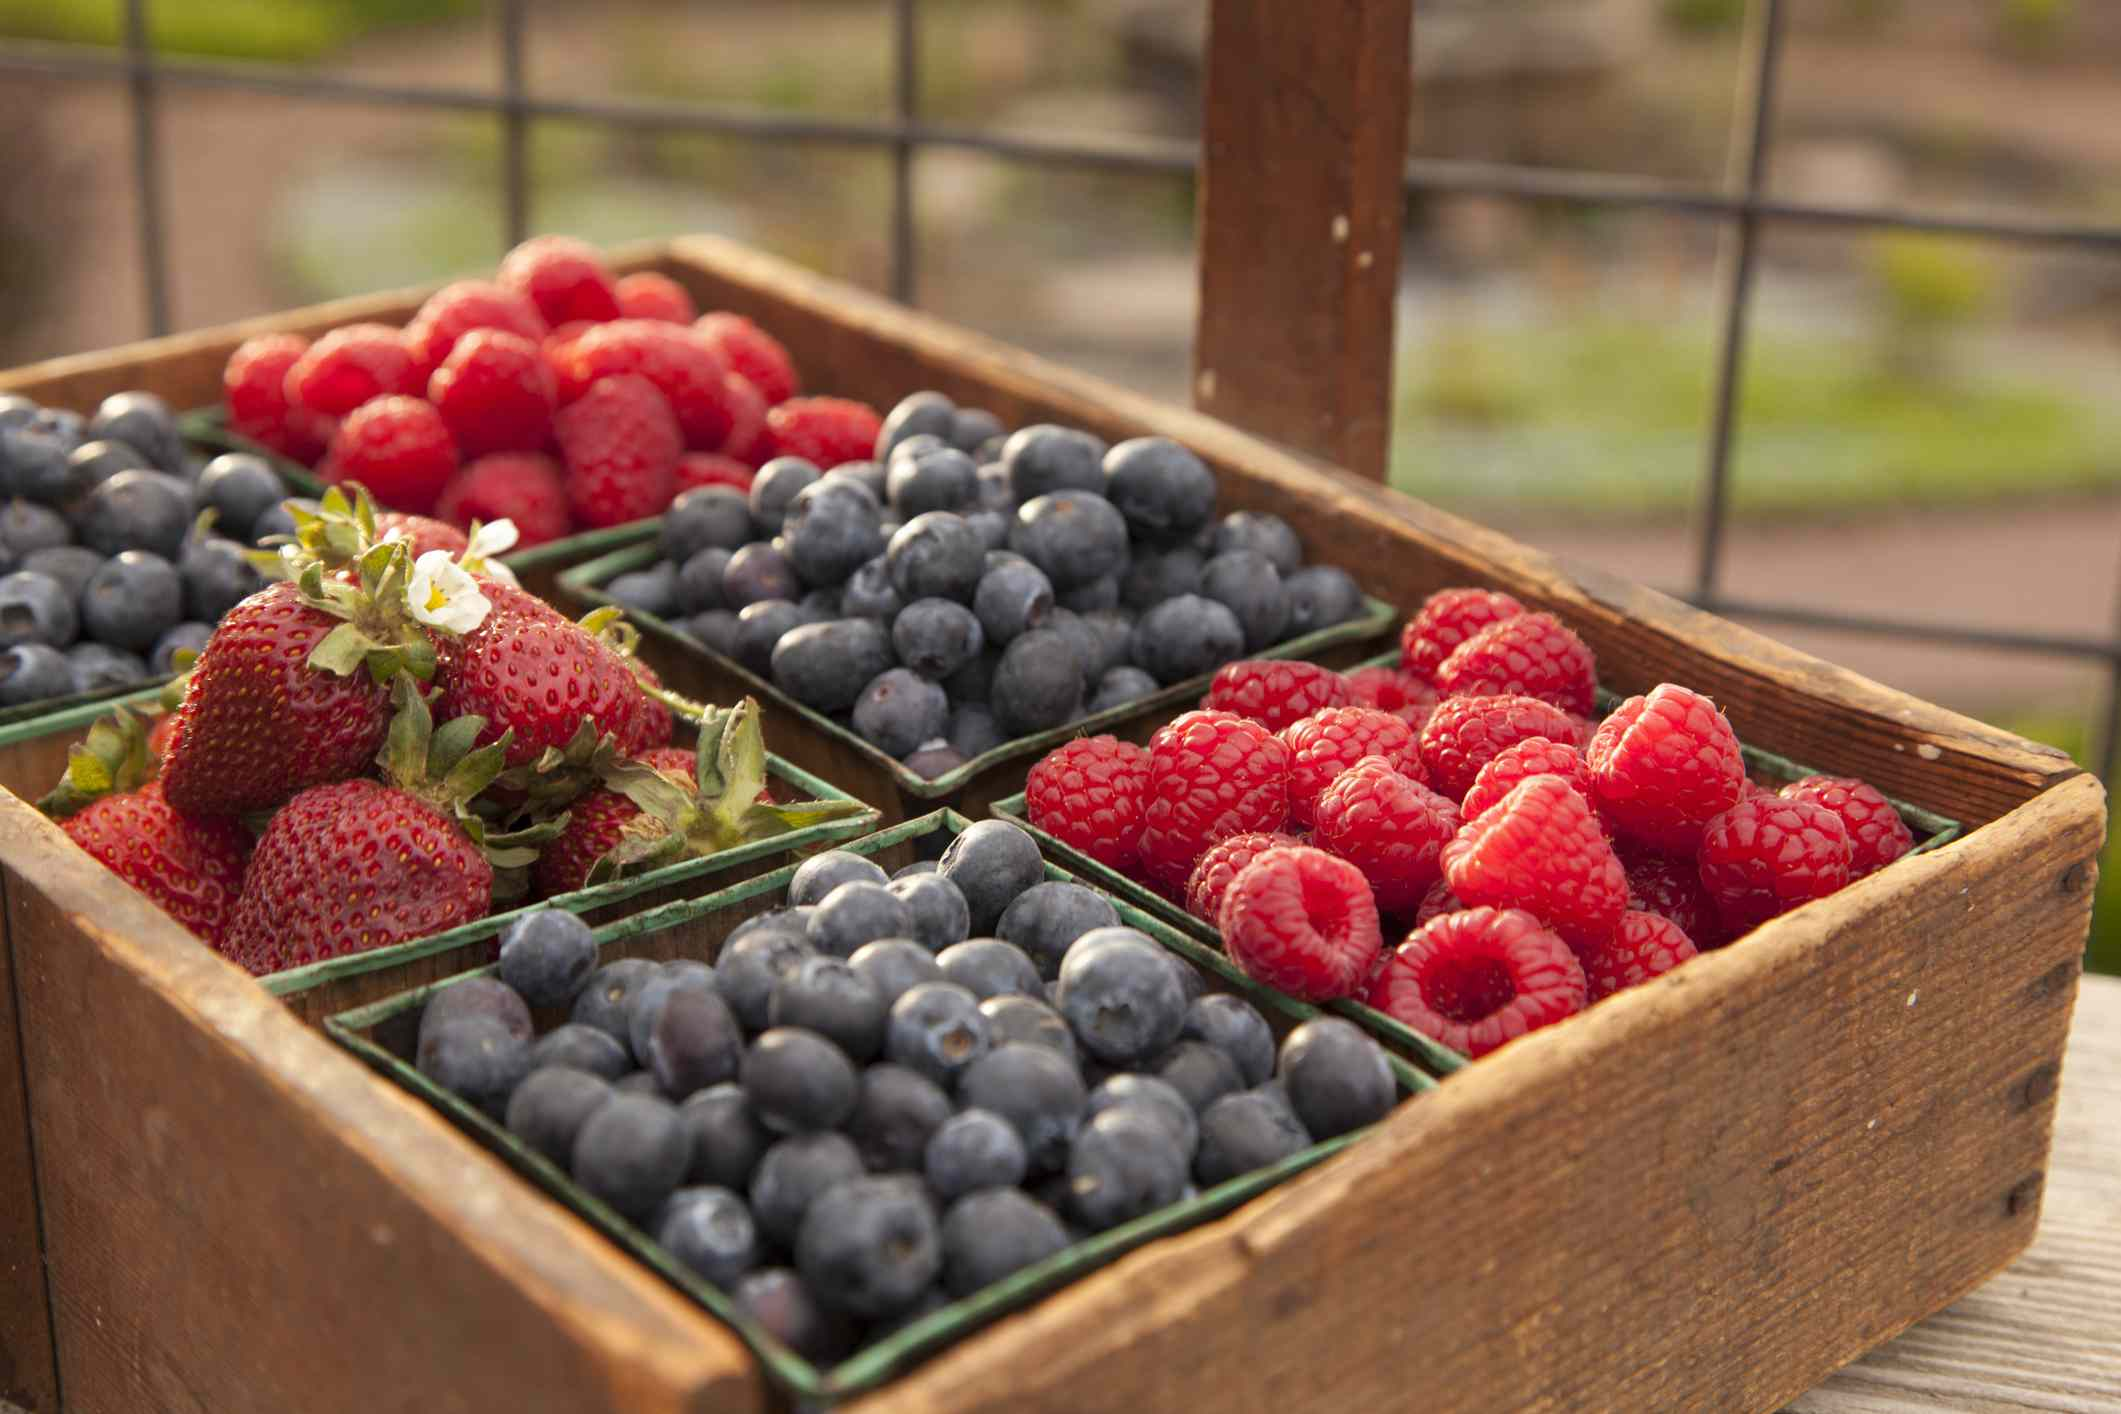 Wooden container with blueberries, raspberries, and strawberries